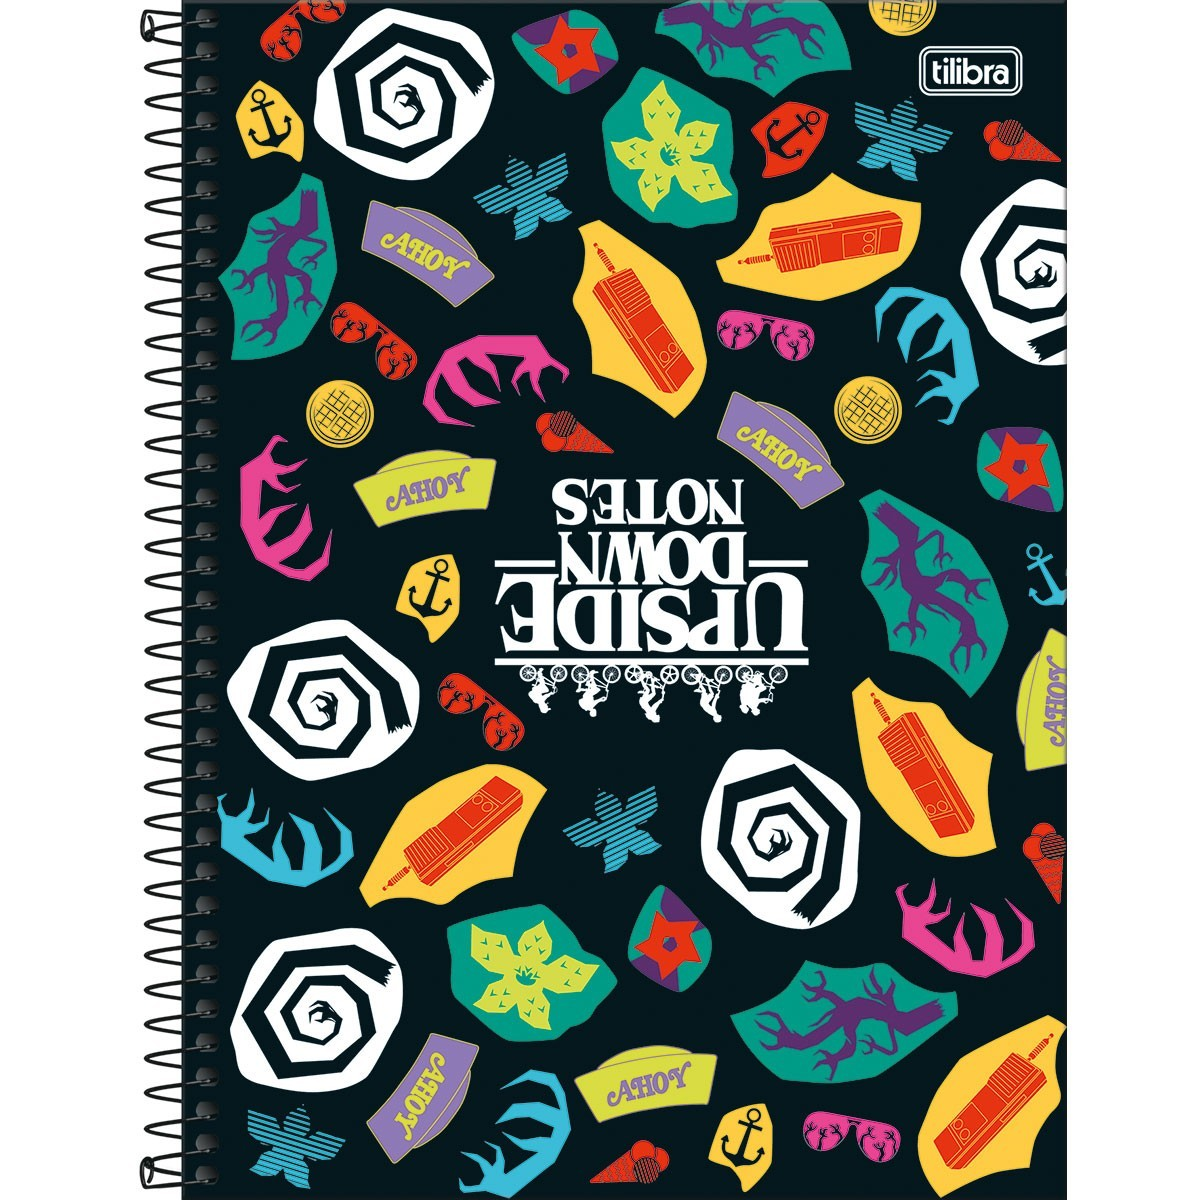 Caderno Espiral Capa Dura Universitário 16 Matérias Stranger Things Upside Down Notes 256 Folhas